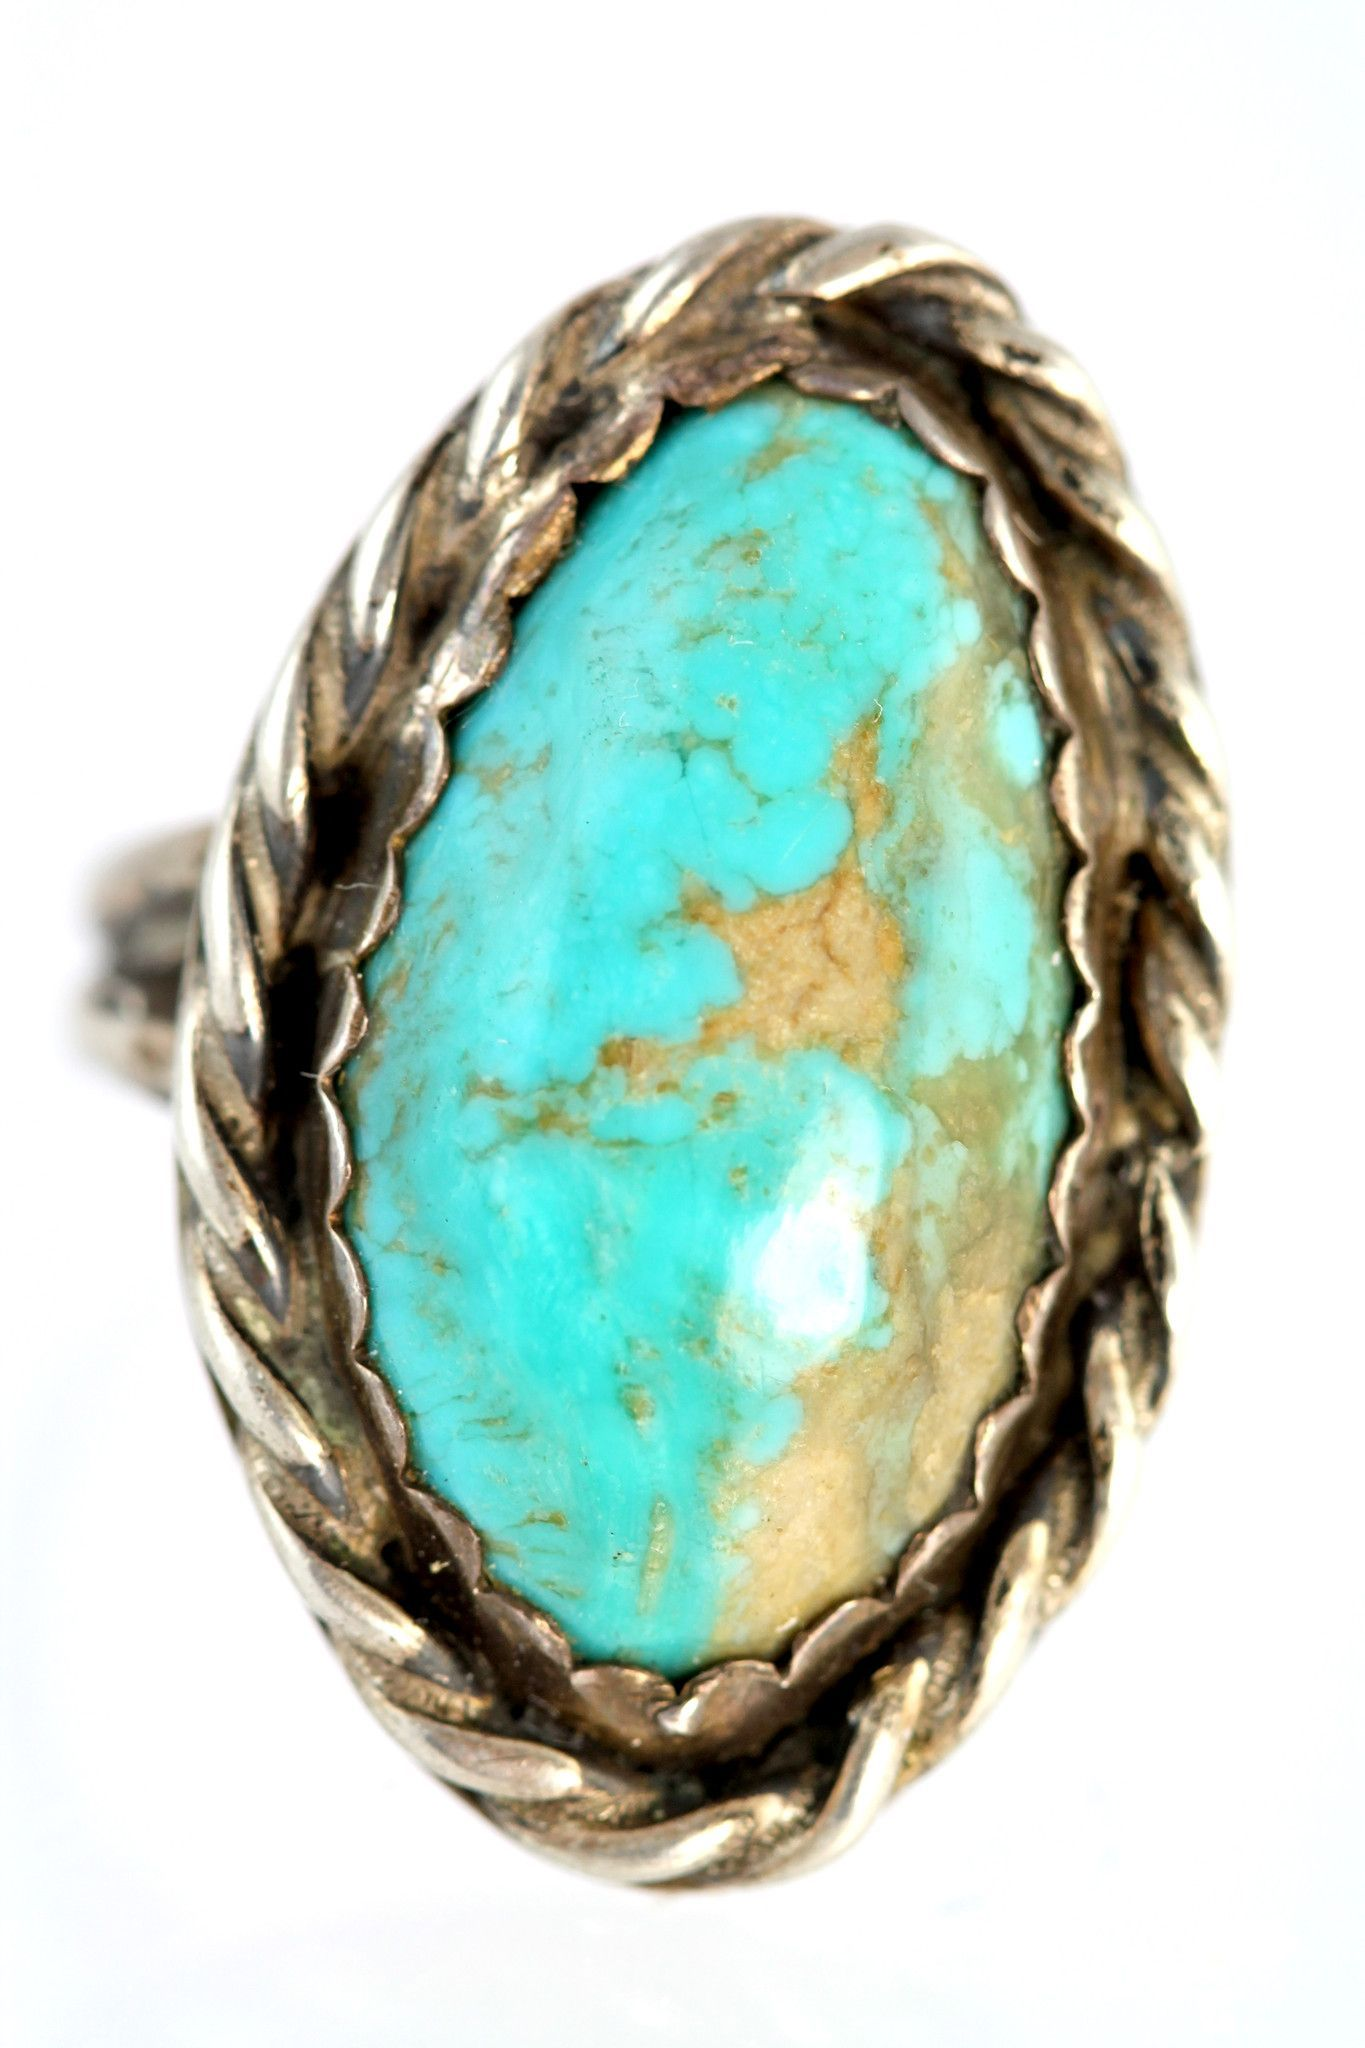 Vintage Navajo sterling silver and turquoise ring. The turquoise is ...